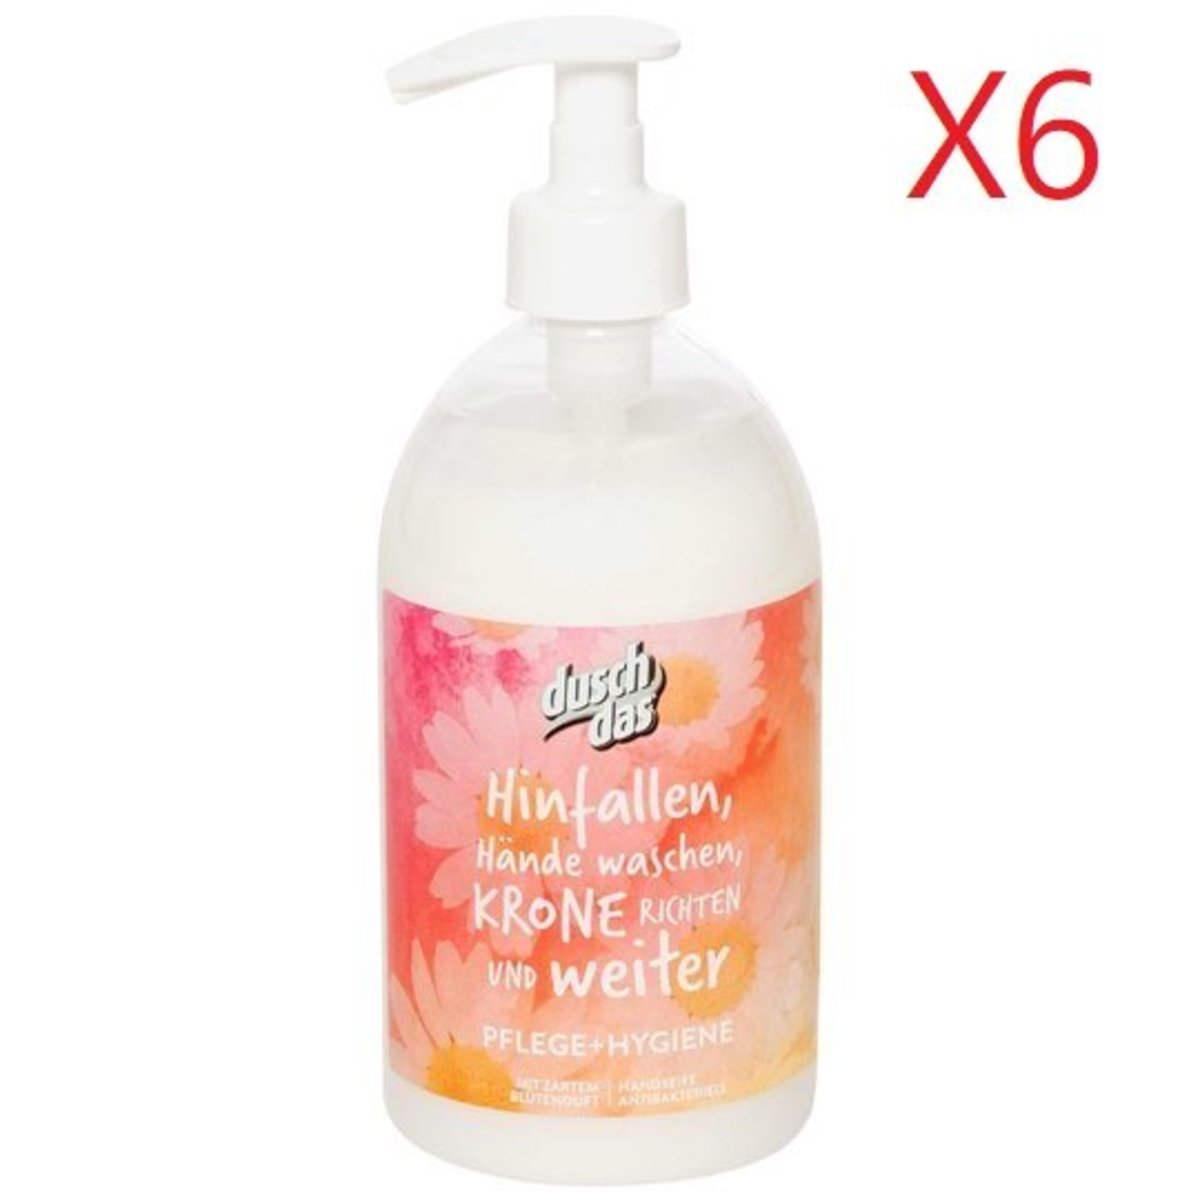 Duschdas Hand Wash 500ml - Care&Hygiene X 6pcs  [Parallel Import Product]